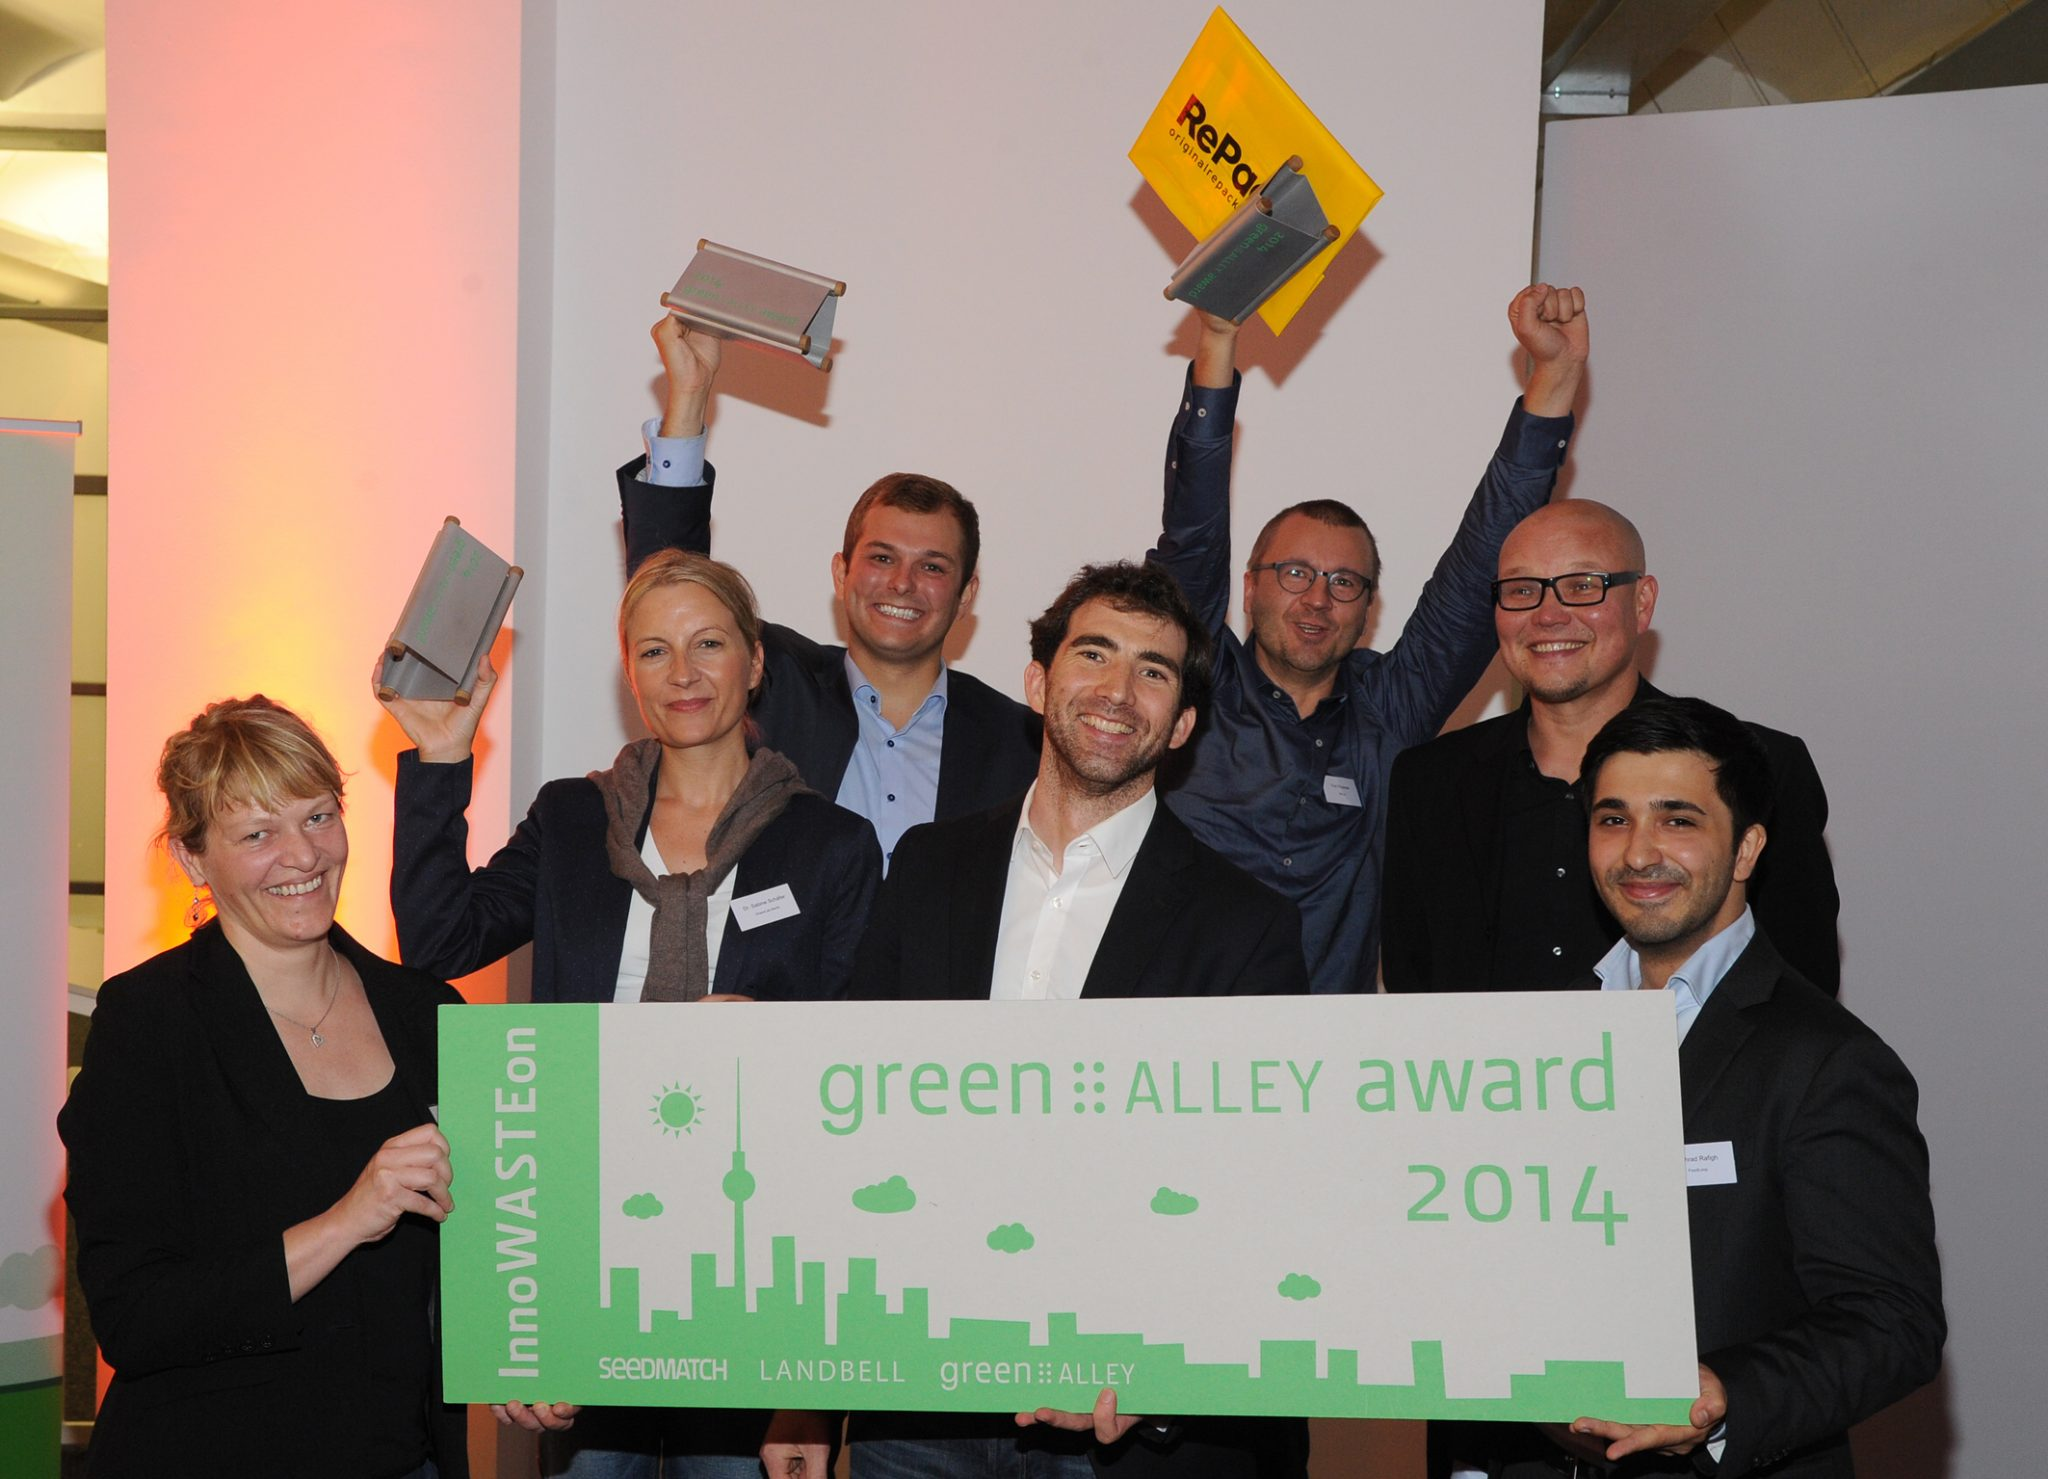 01-Green-Alley-Award_alle-Gewinner